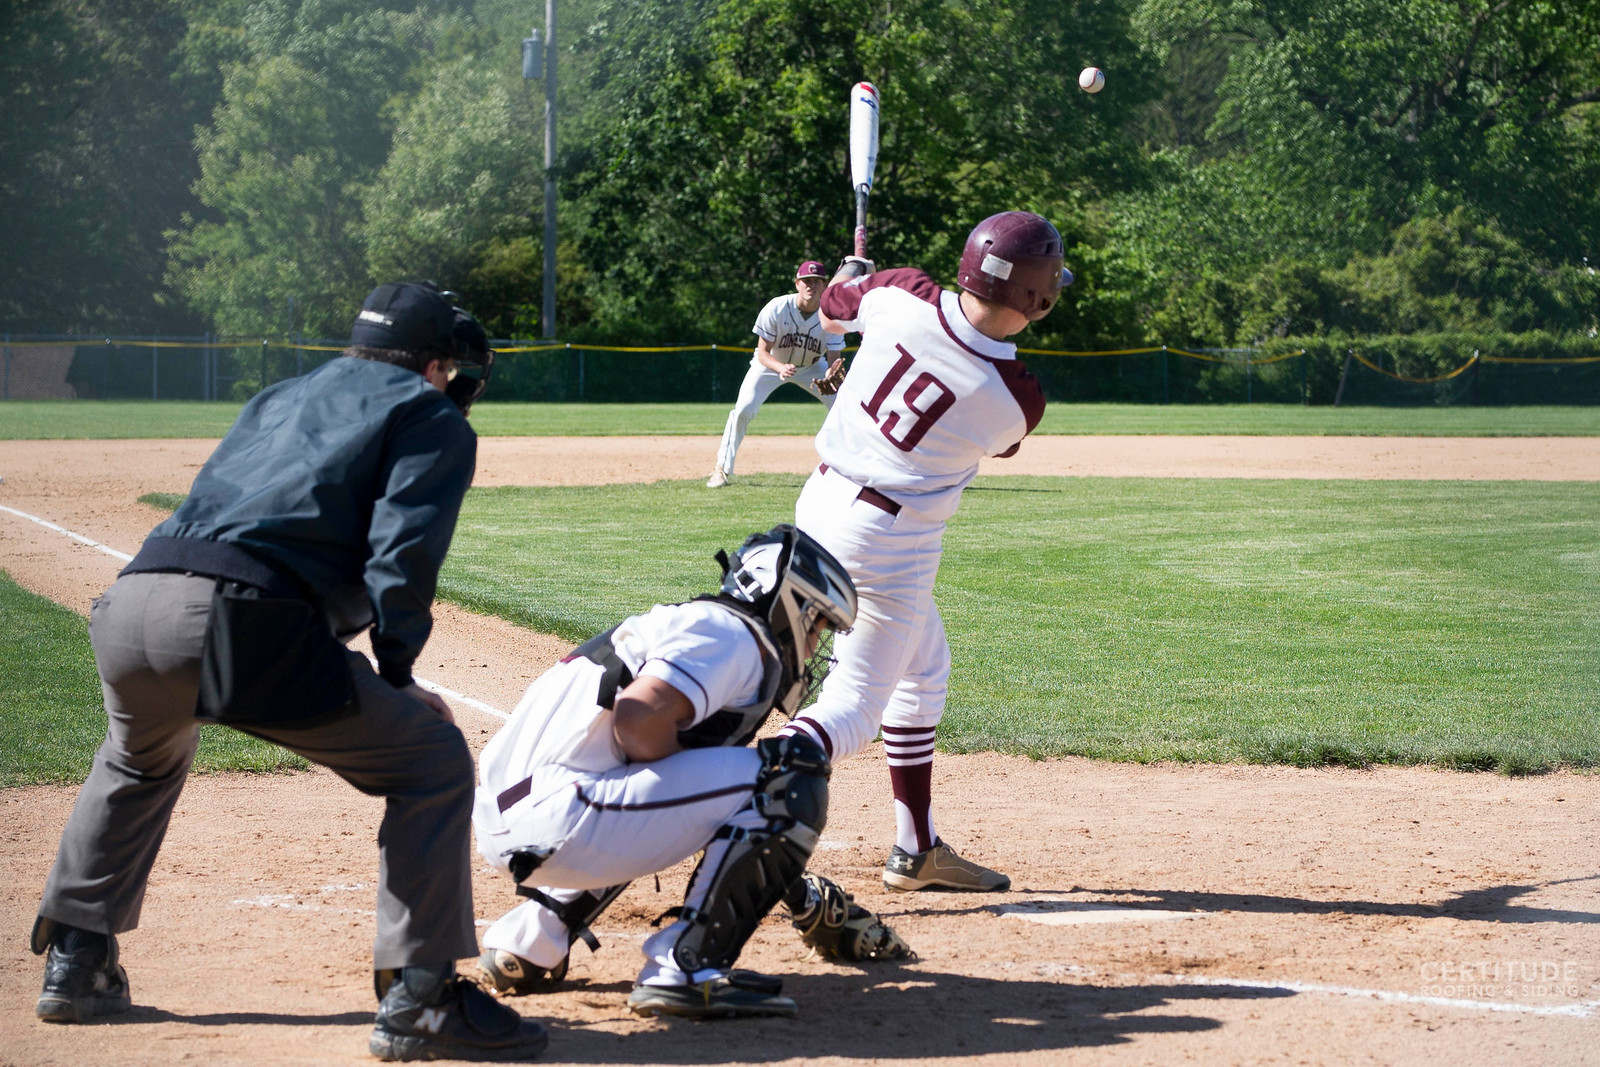 Lower_Merion_BASEBALL_vs_Conestoga-42